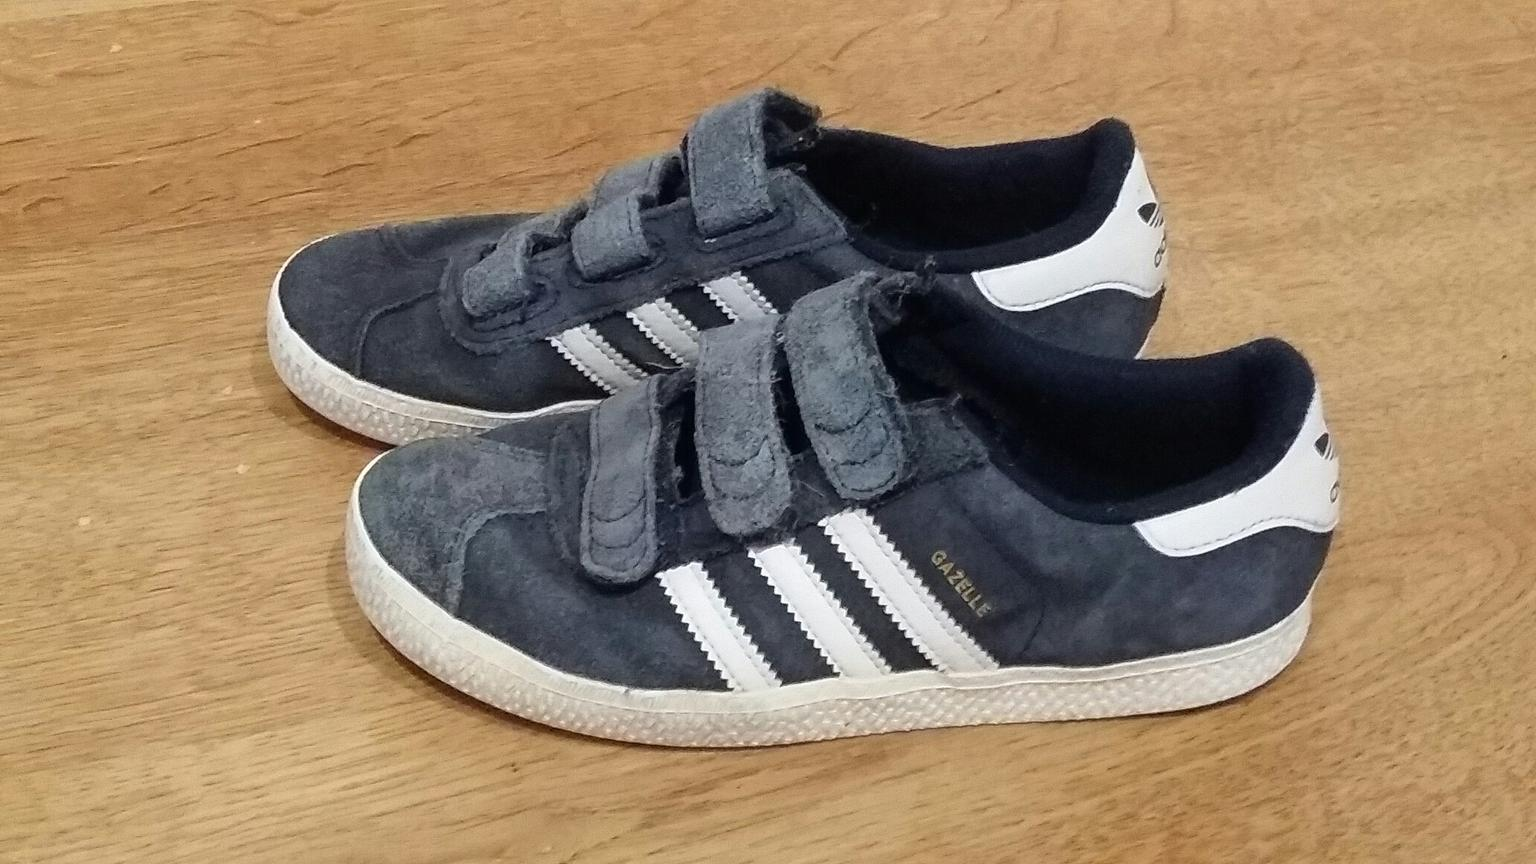 Boys adidas gazelle trainers size 1 in NG6 Nottingham for £3 for sale -  Shpock 70d2d47e7